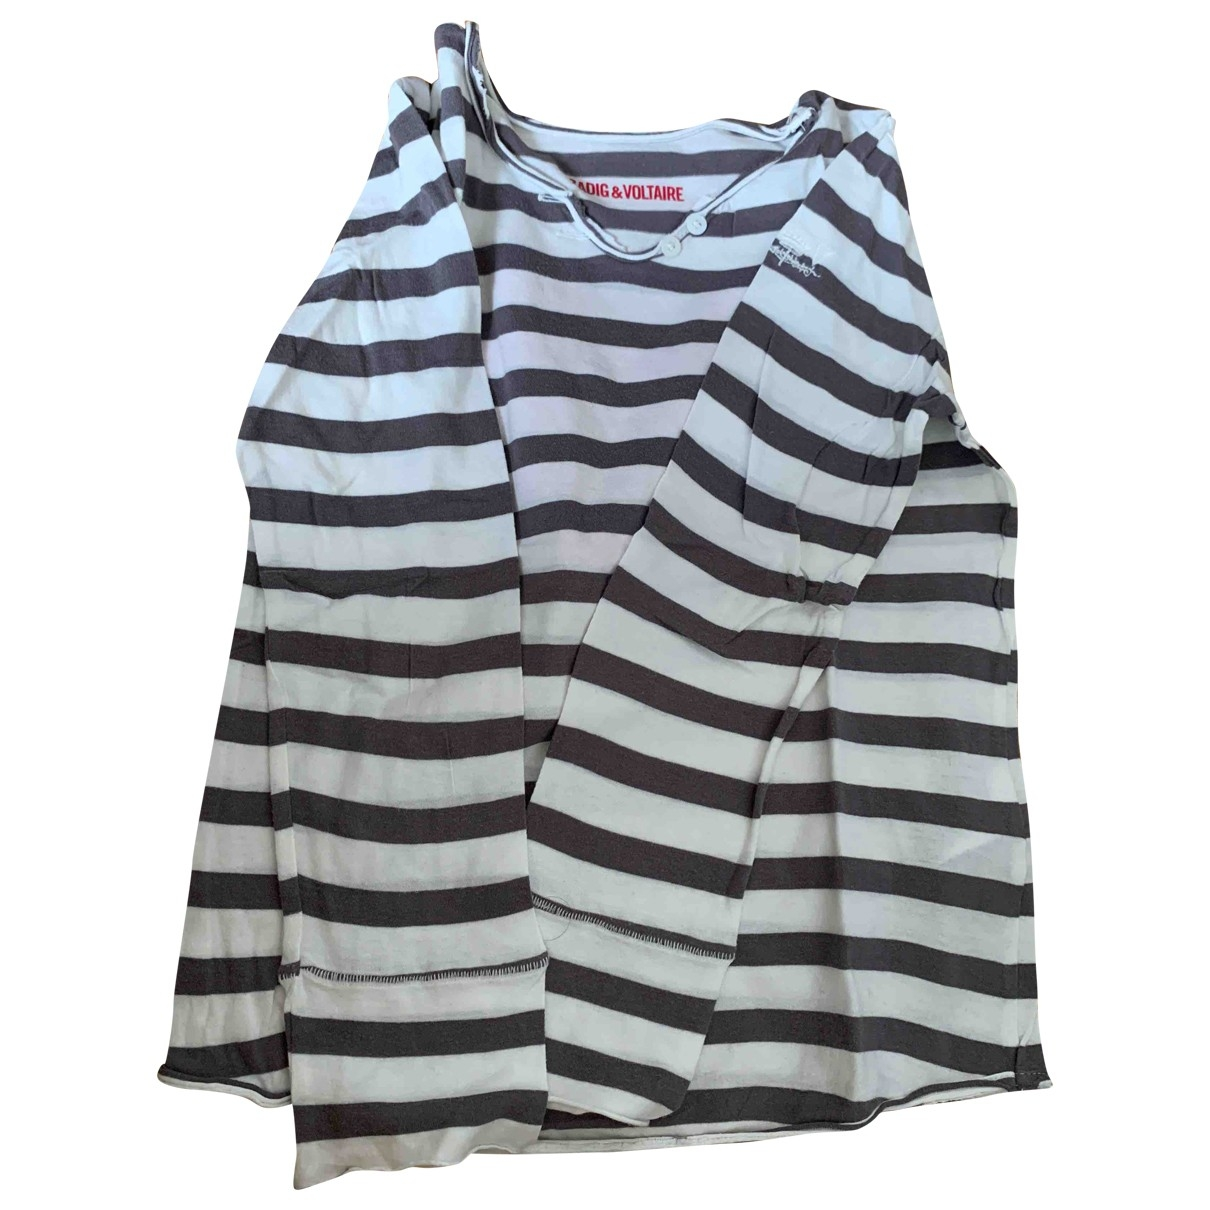 Zadig & Voltaire \N White Cotton  top for Kids 8 years - up to 128cm FR